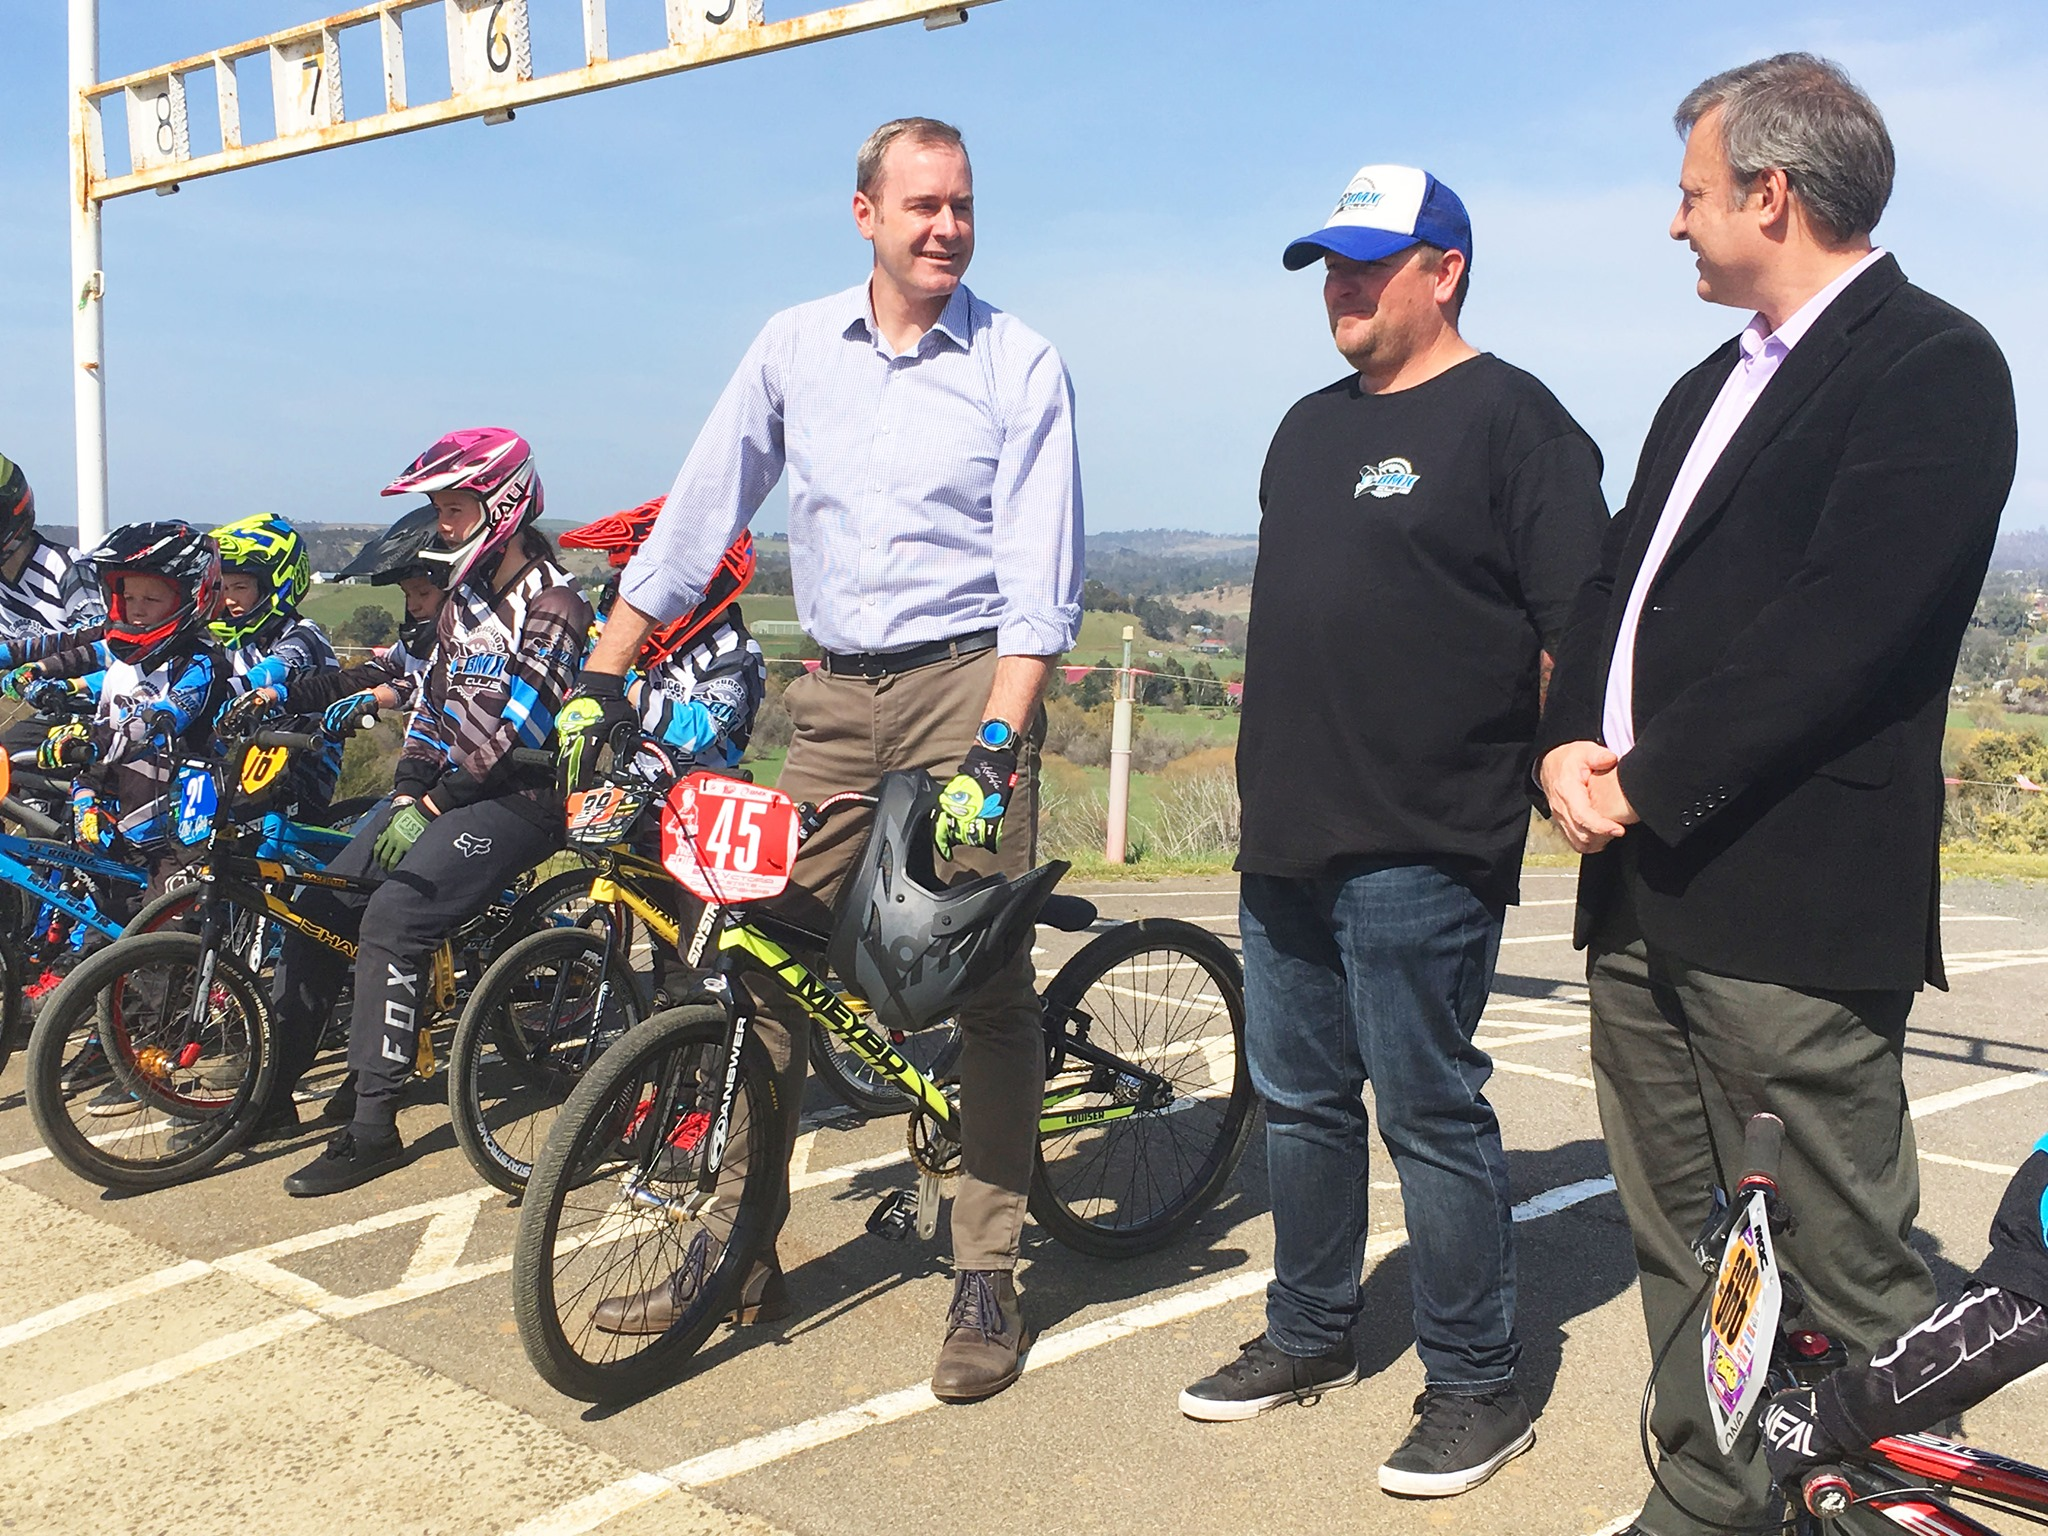 BMX championships are coming to Launceston